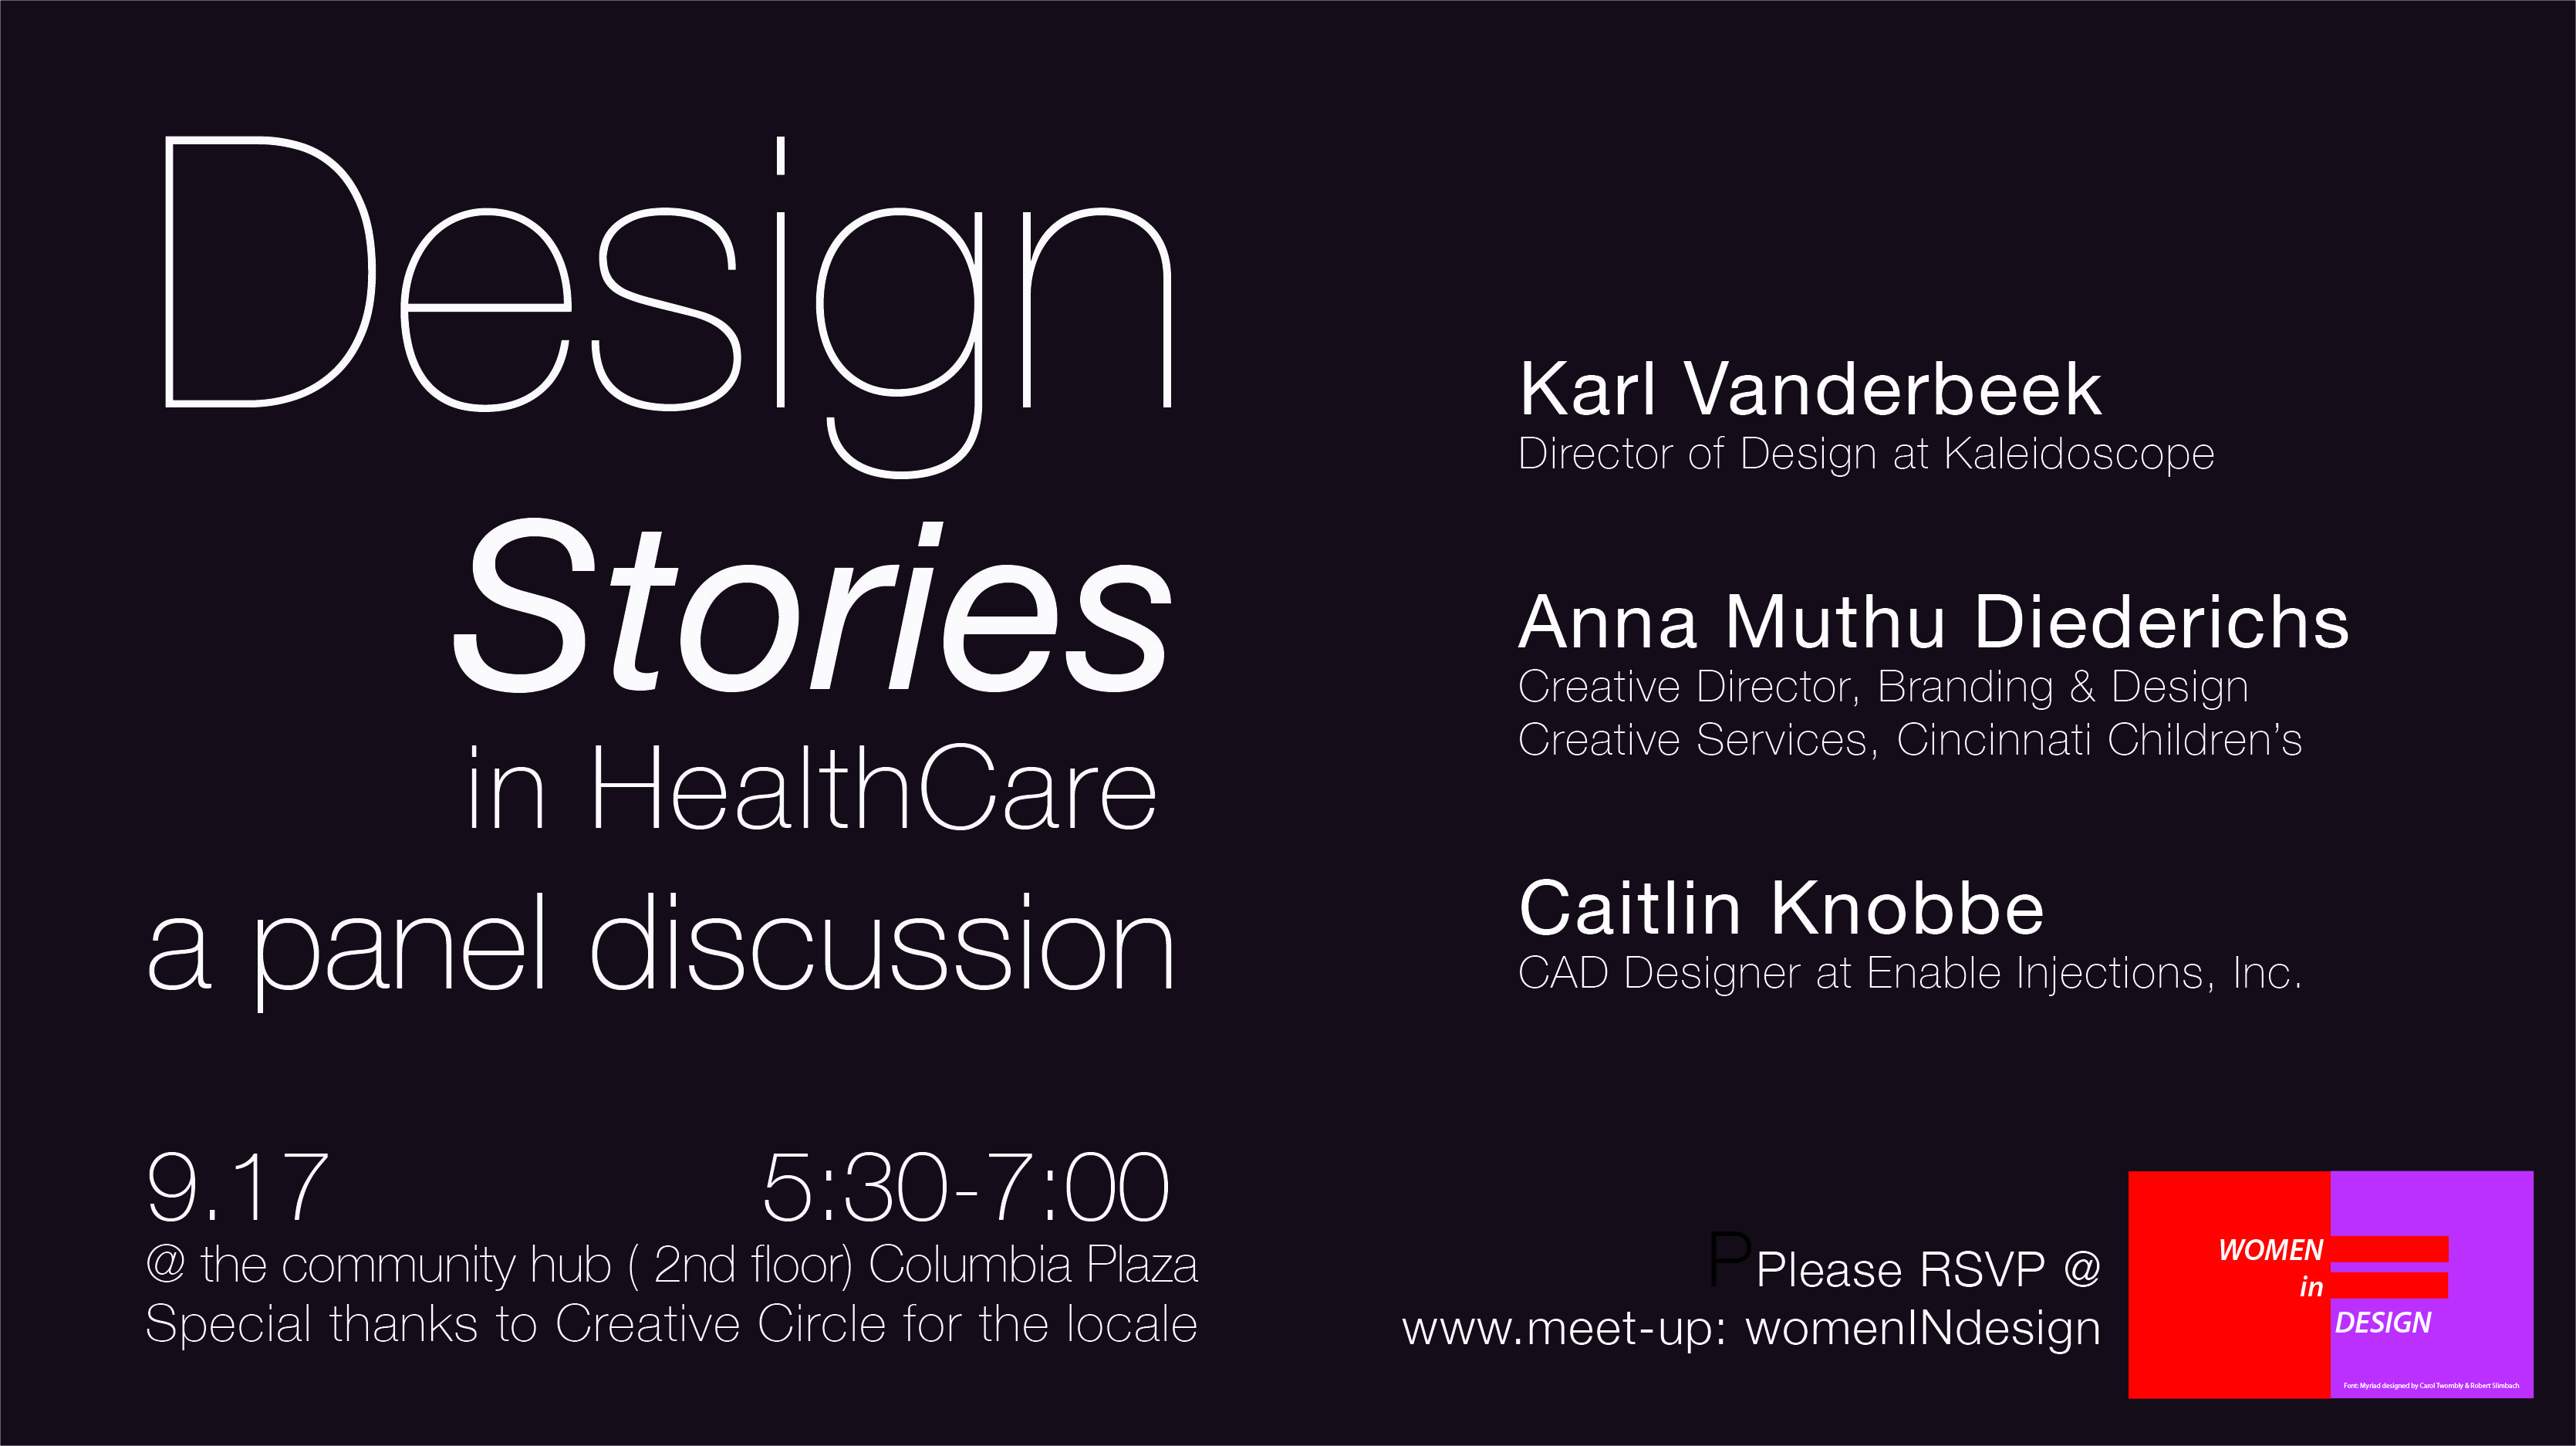 Design Stories in Healthcare: Women in Design